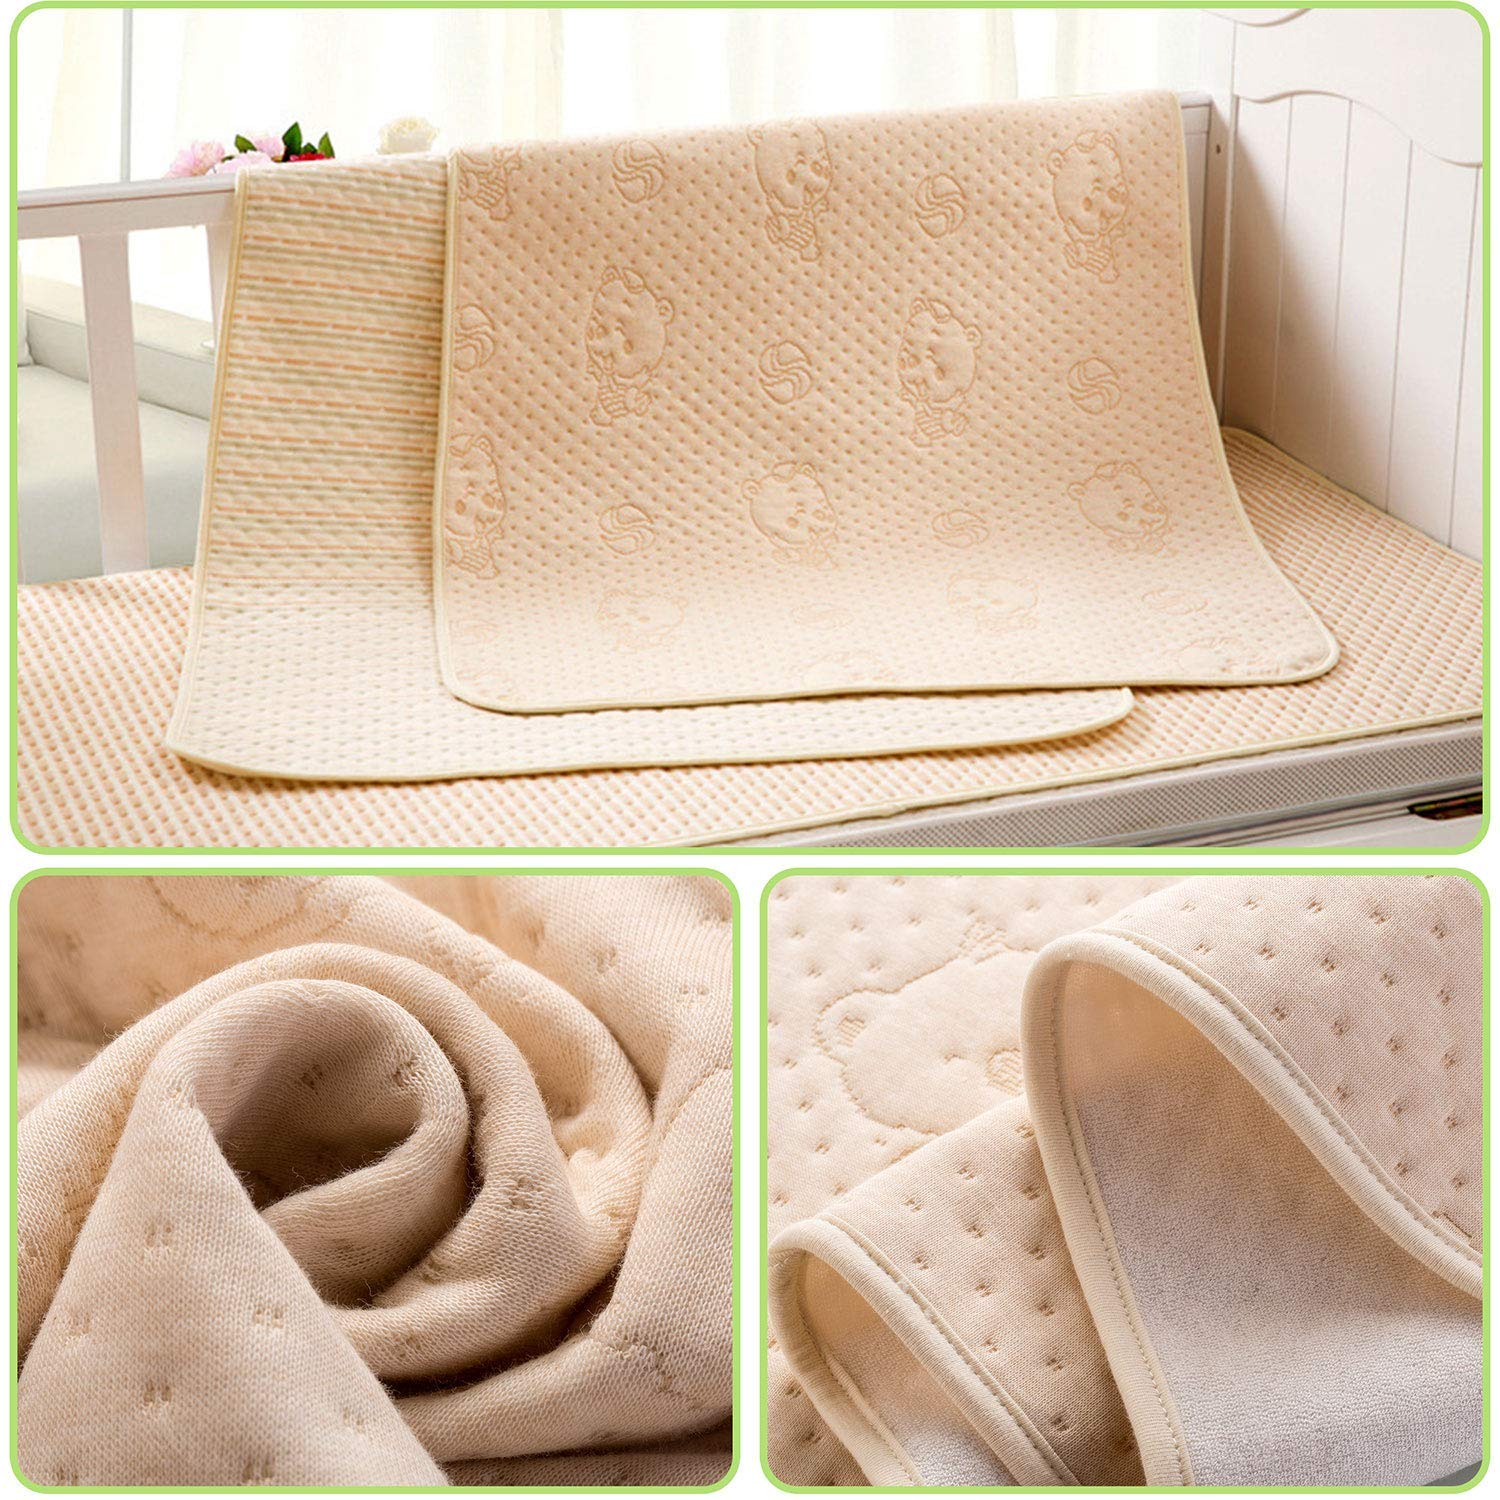 """Washable Mattress Pad Reusable Underpads Bed Wetting Incontinence Cover for Baby Toddler Children and Adults,27.6/""""X37.4/"""",Cotton 4 Protective Layers Ultra Bear Pattern Waterproof Bed Pads for Kids"""